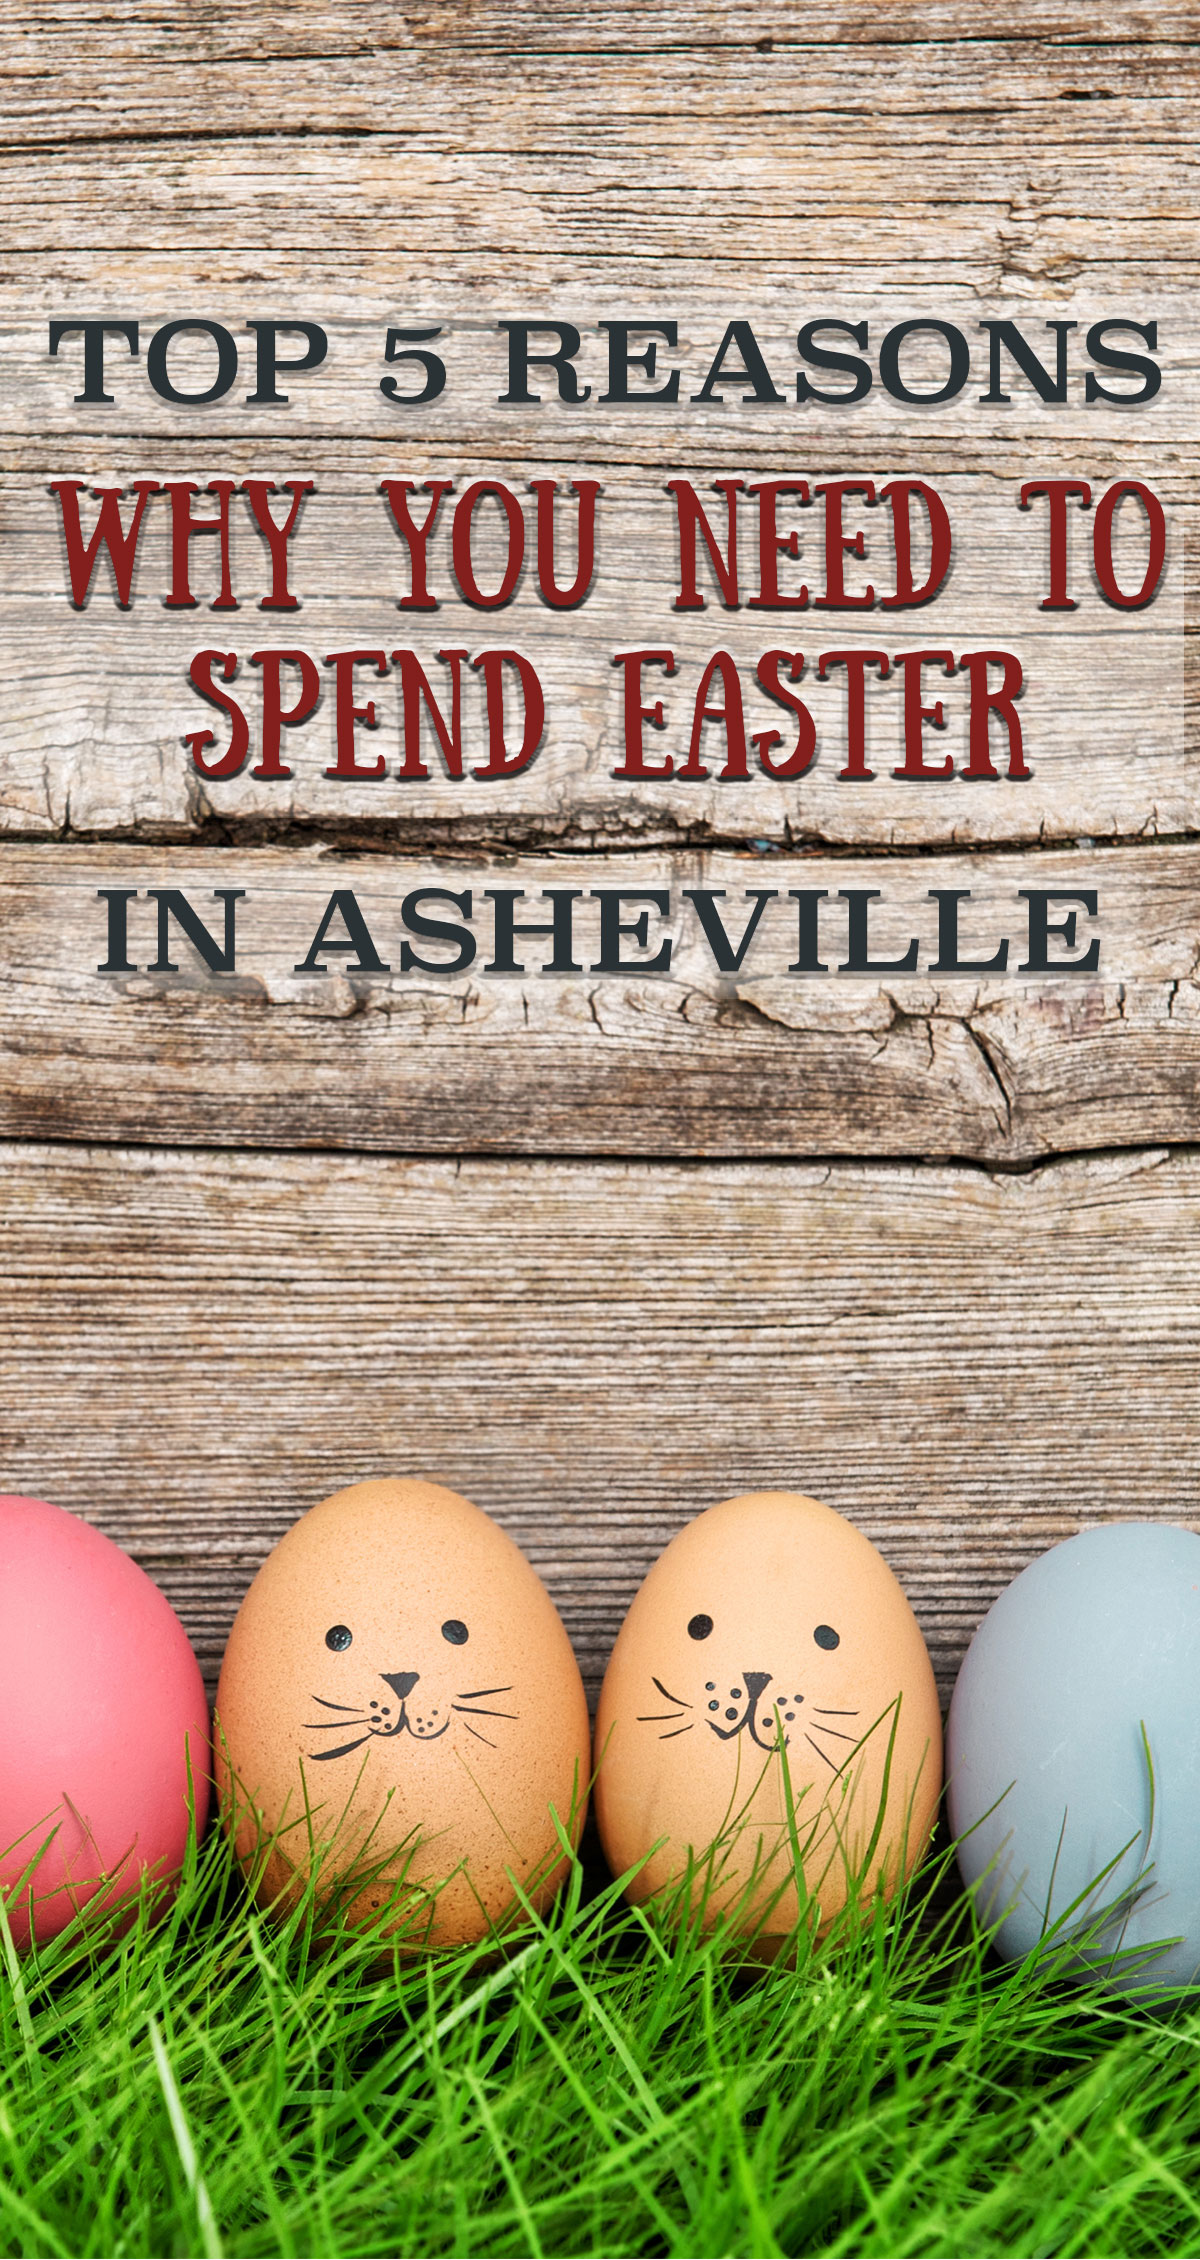 Top 5 Reasons Why You Need to Spend Easter in Asheville Pin